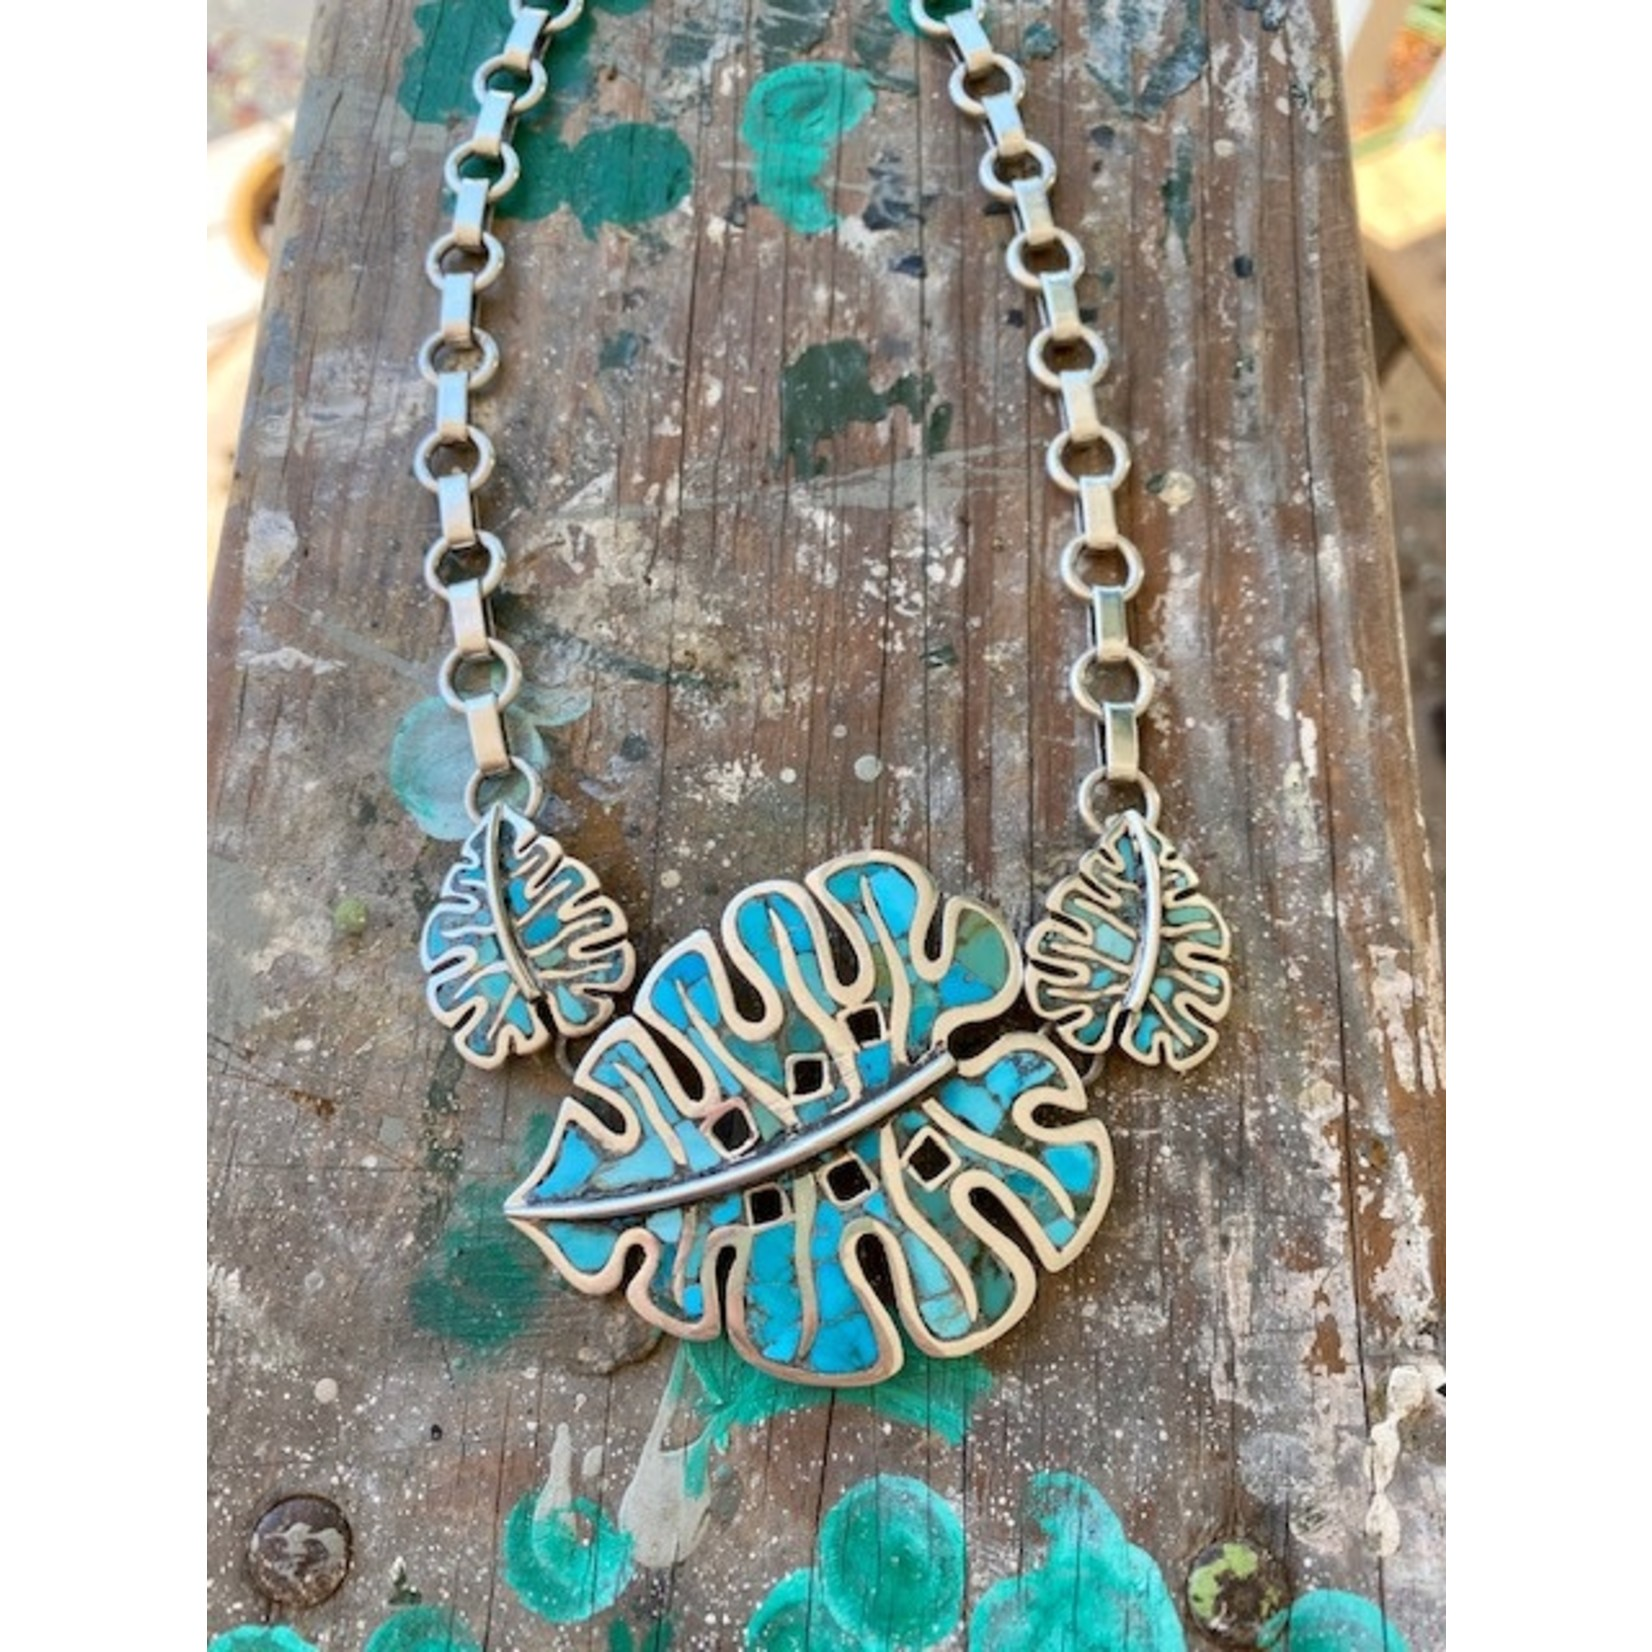 Silverheart Silverheart | Turquoise leaf and handmade chain necklace